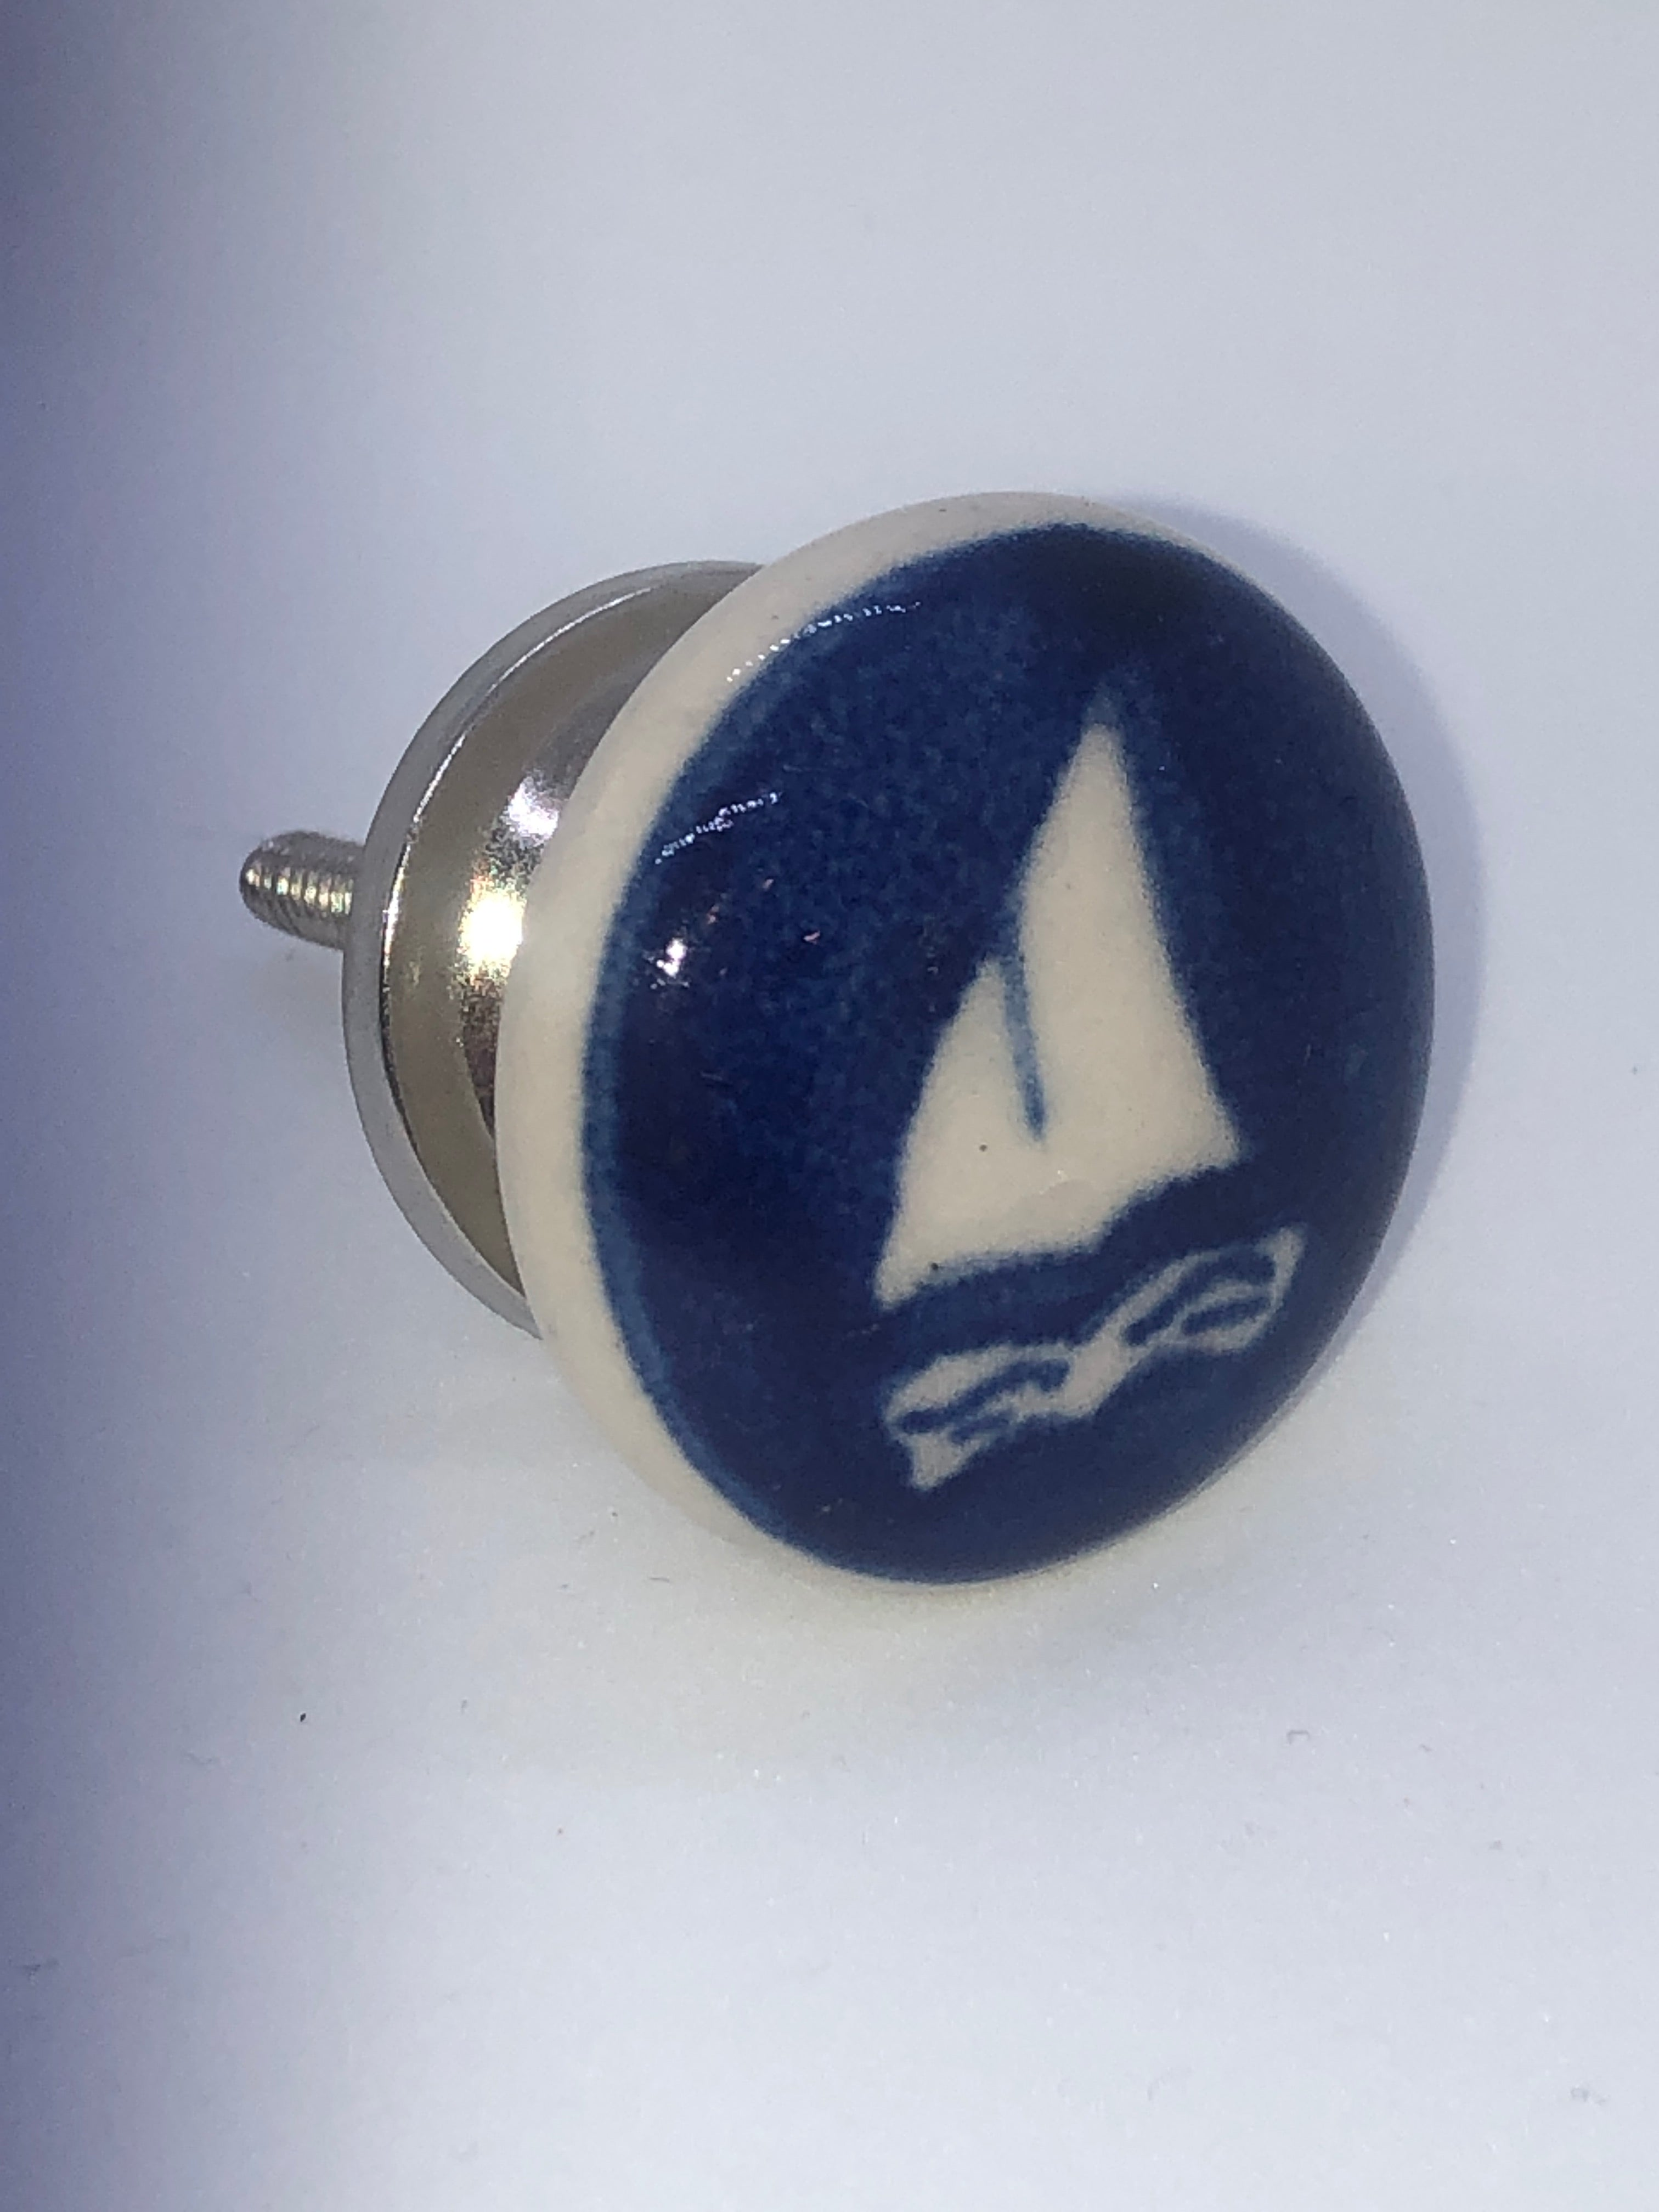 SAIL & ANCHOR BOAT KNOB SALE $4.00